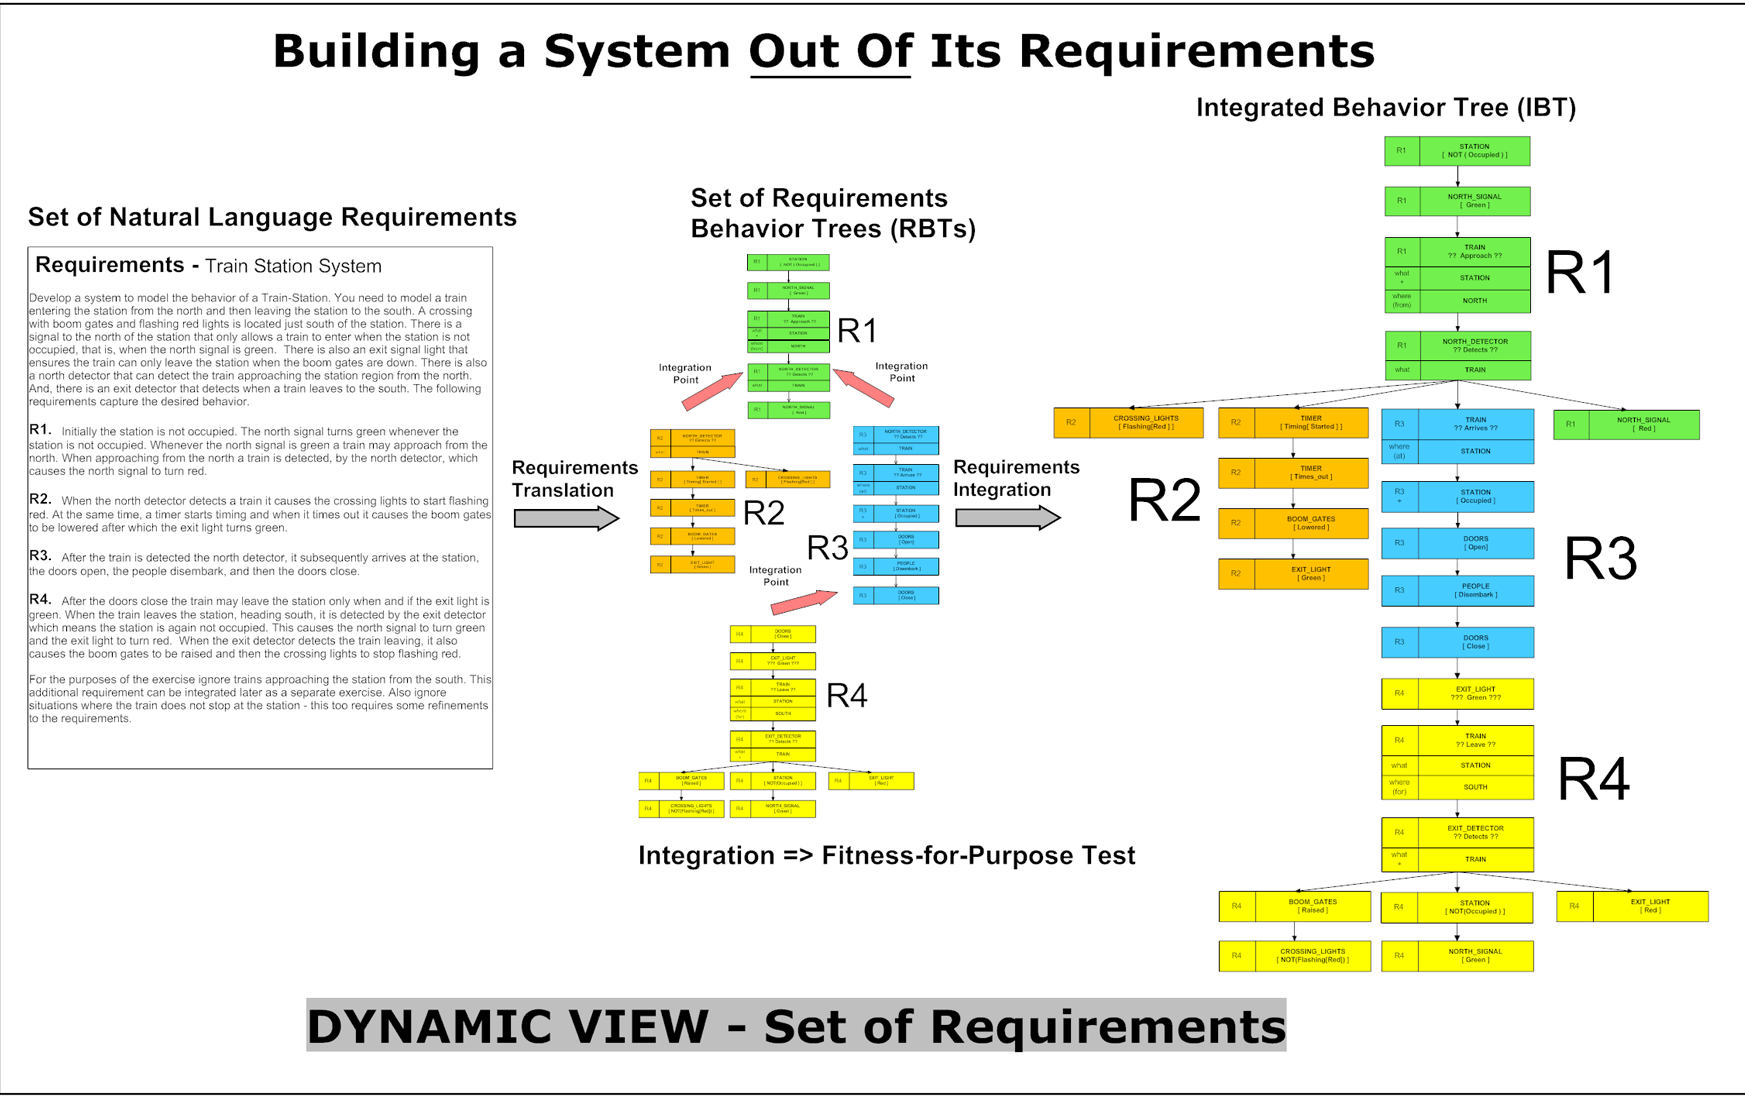 Geoff Dromey's Building a System Out of its Requirements summary figure